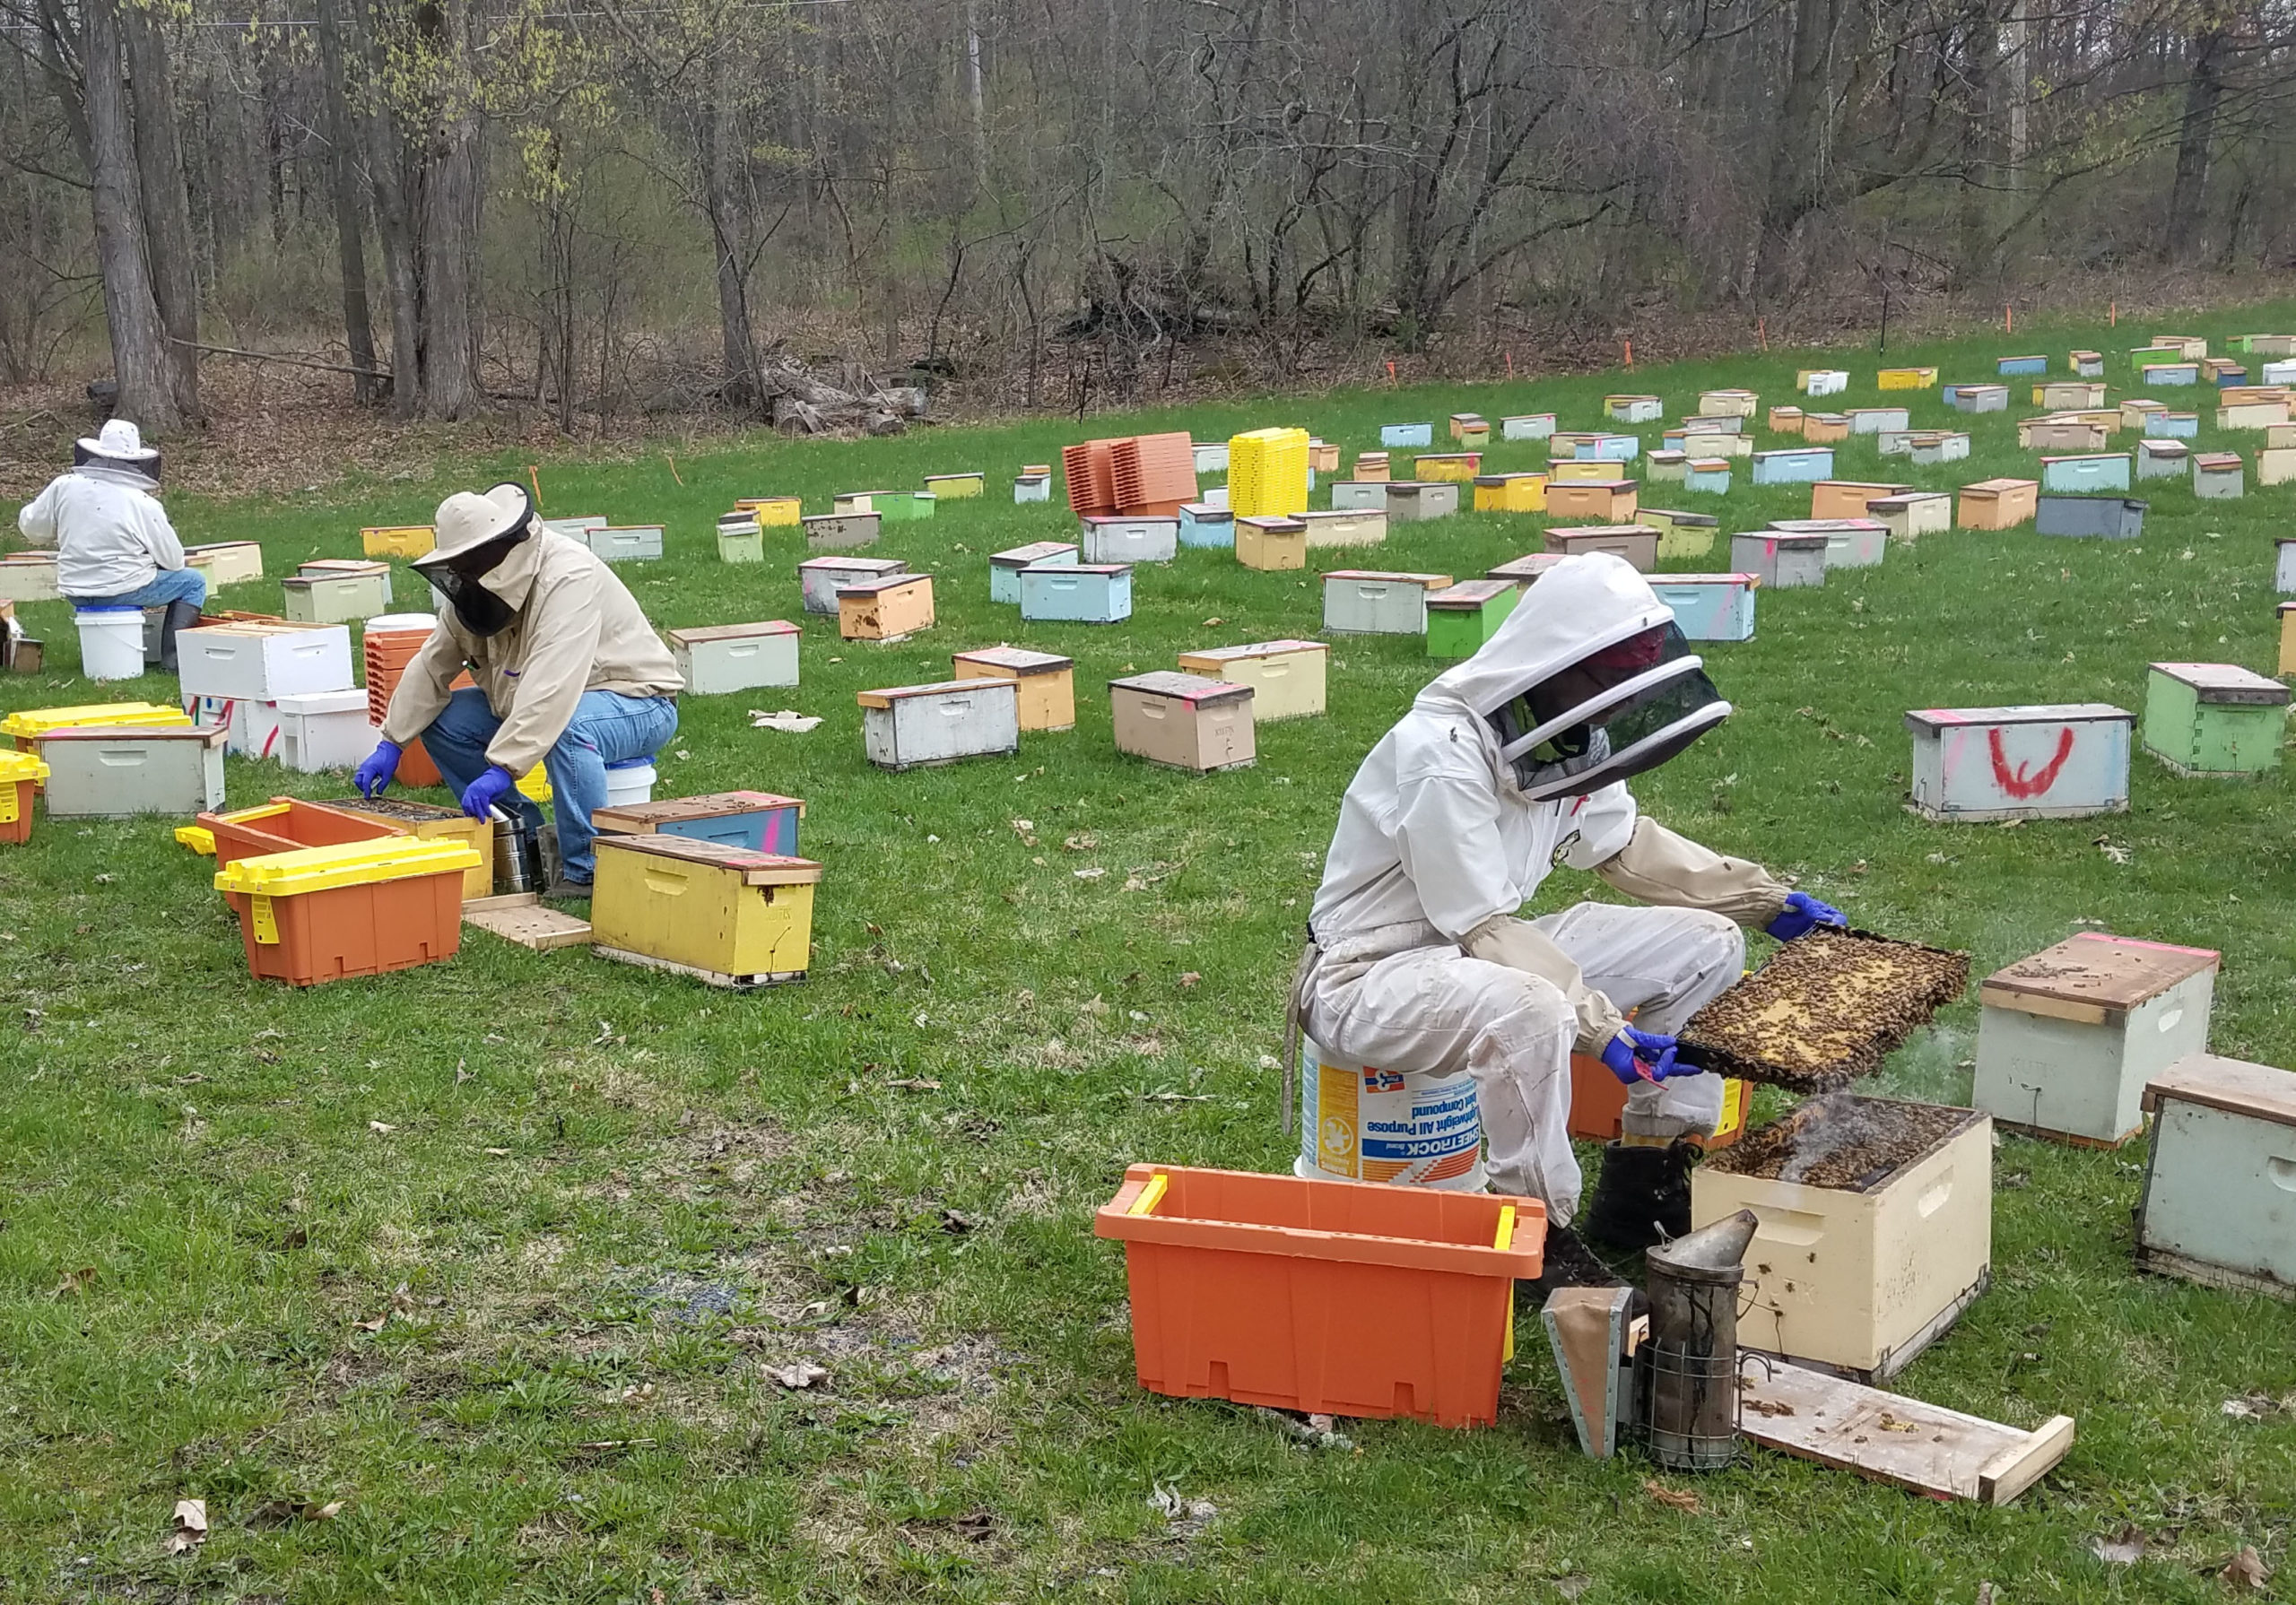 Transferring bees into nuc boxes